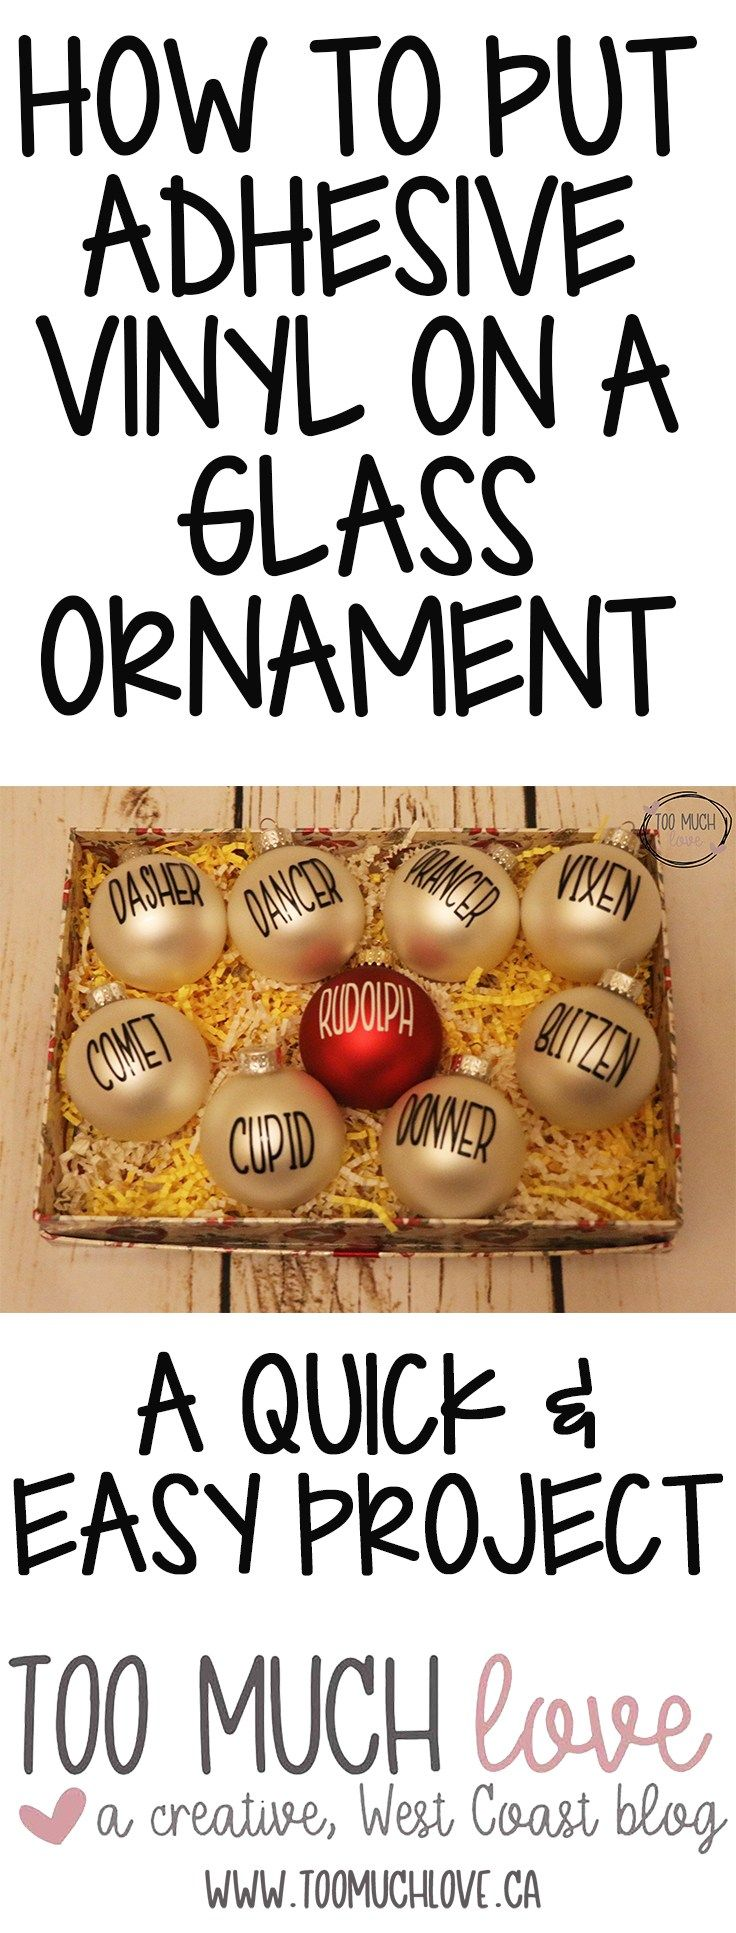 How to Put Adhesive Vinyl on a Glass Ornament #diychristmasgifts